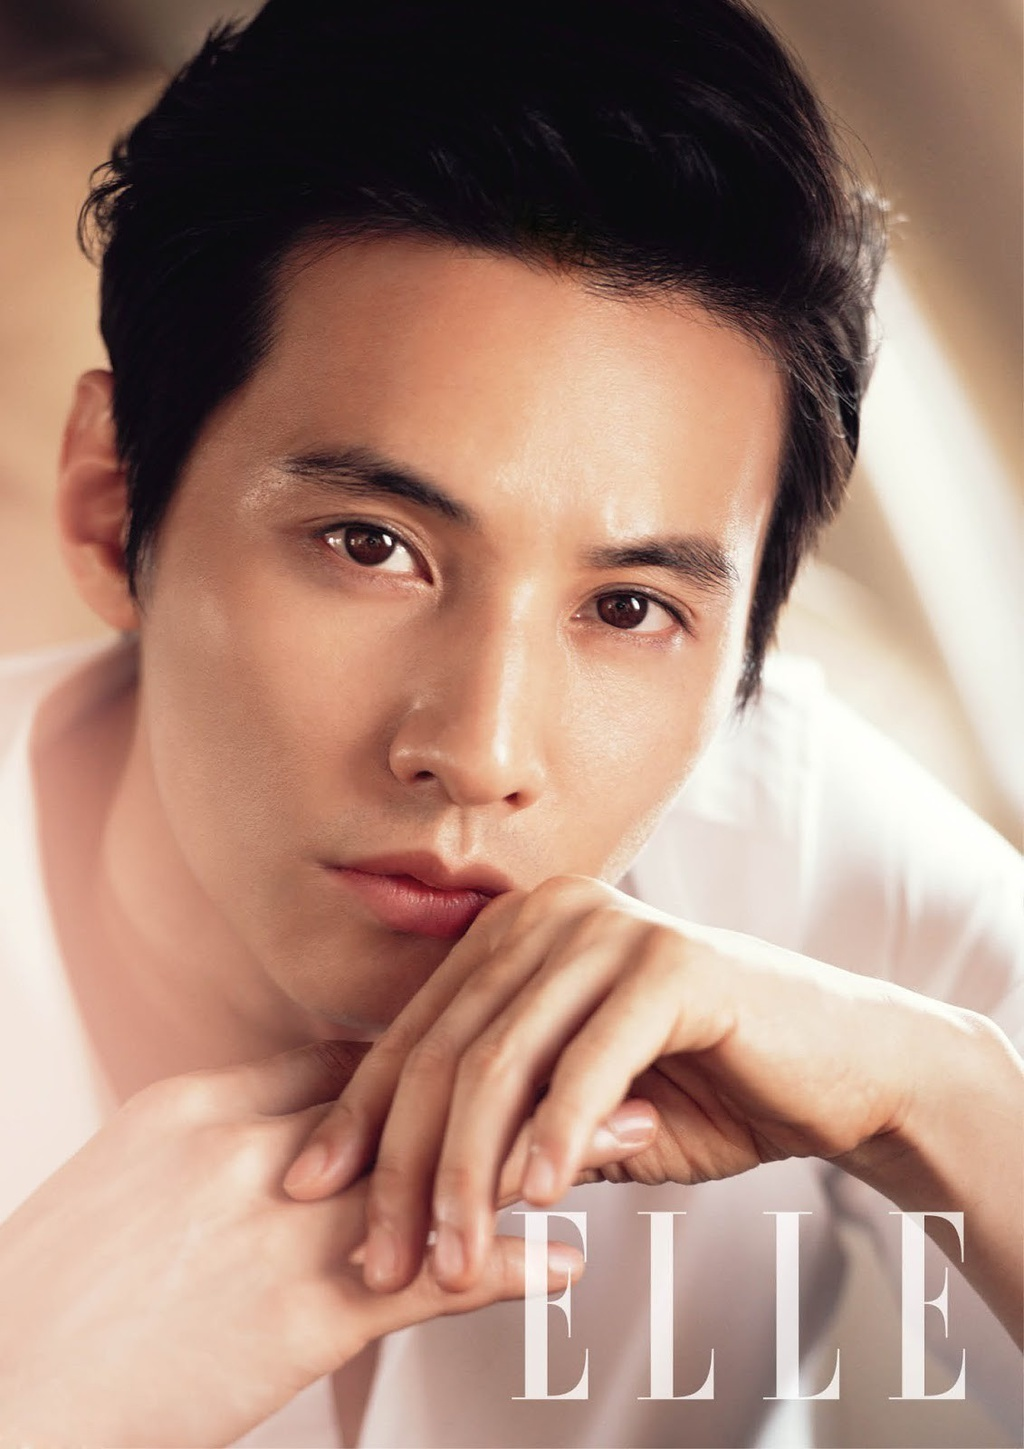 won bin chup anh voi lam chi dinh chung han luong anh 14